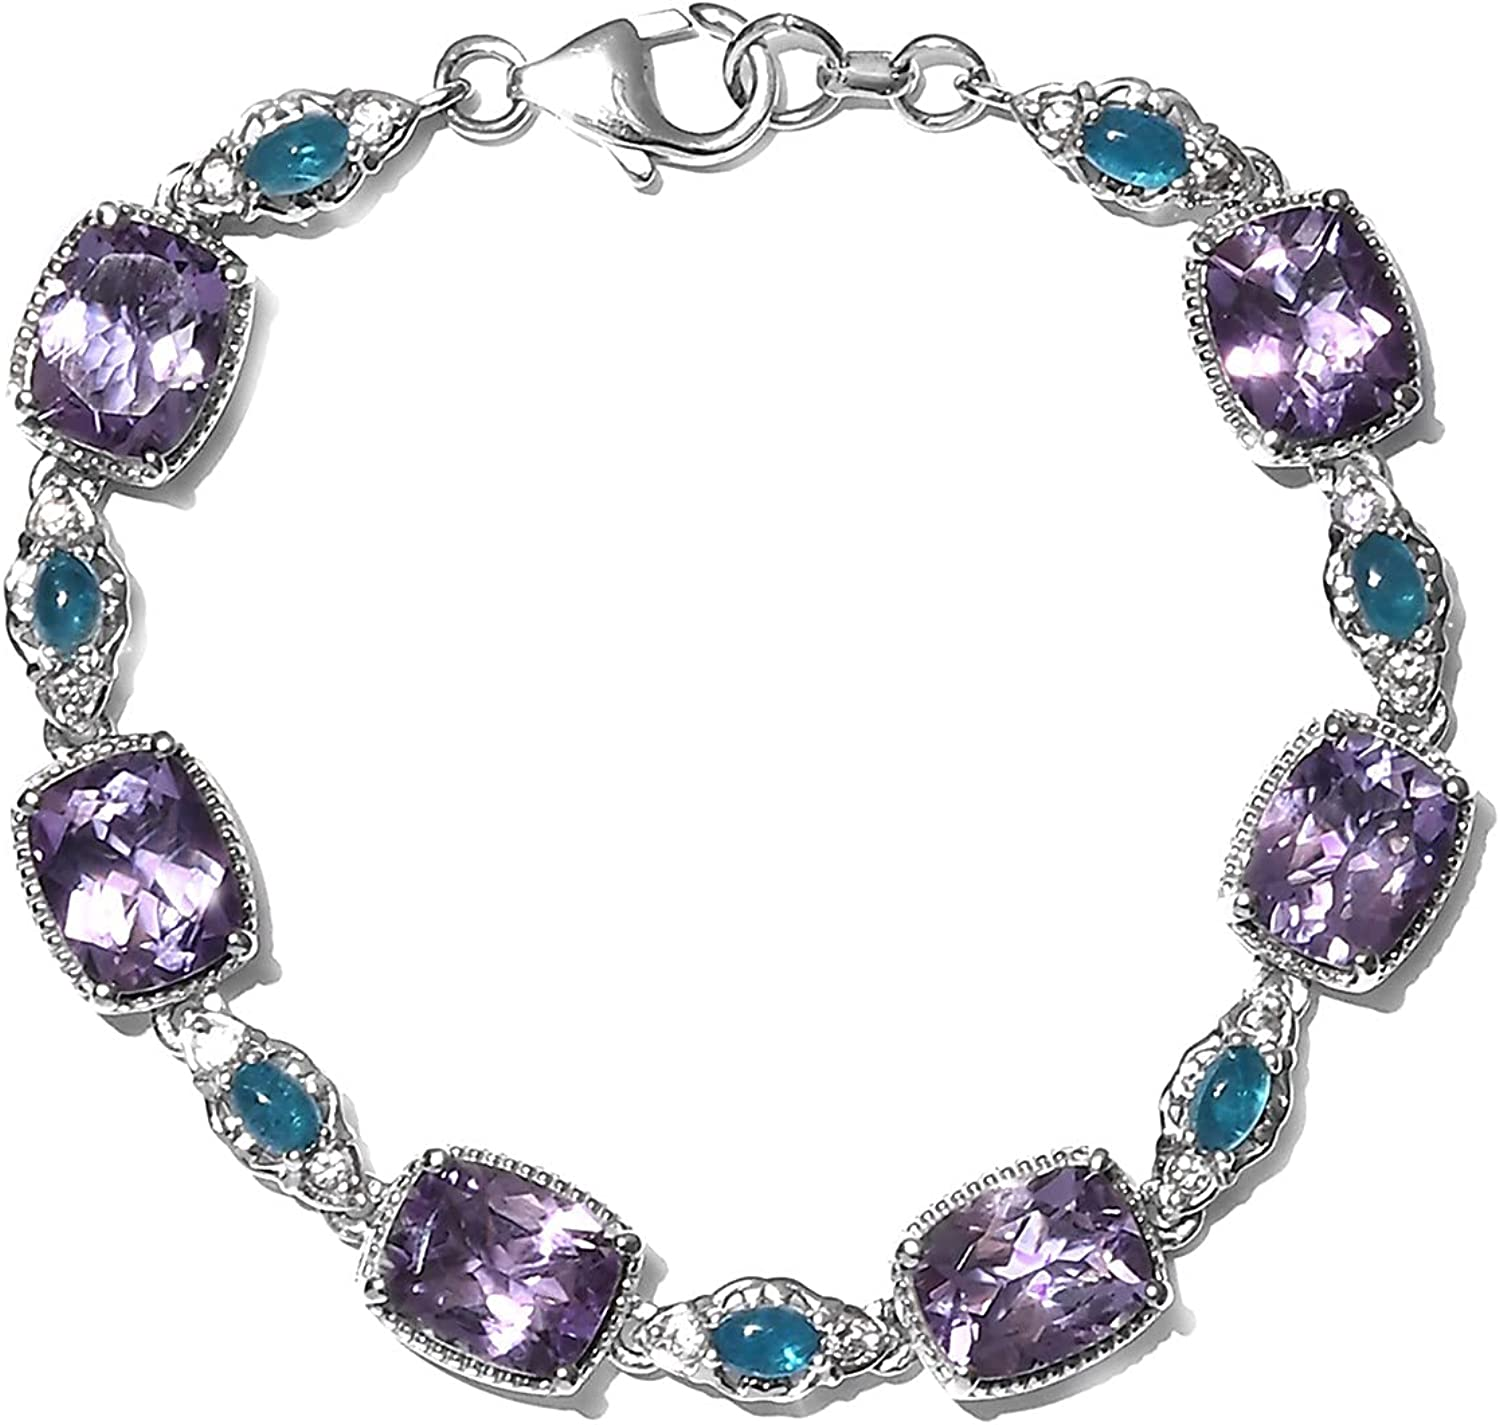 Shop LC 925 Sterling Silver Cushion Seattle Mall Neon Max 47% OFF A Amethyst Natural Pink